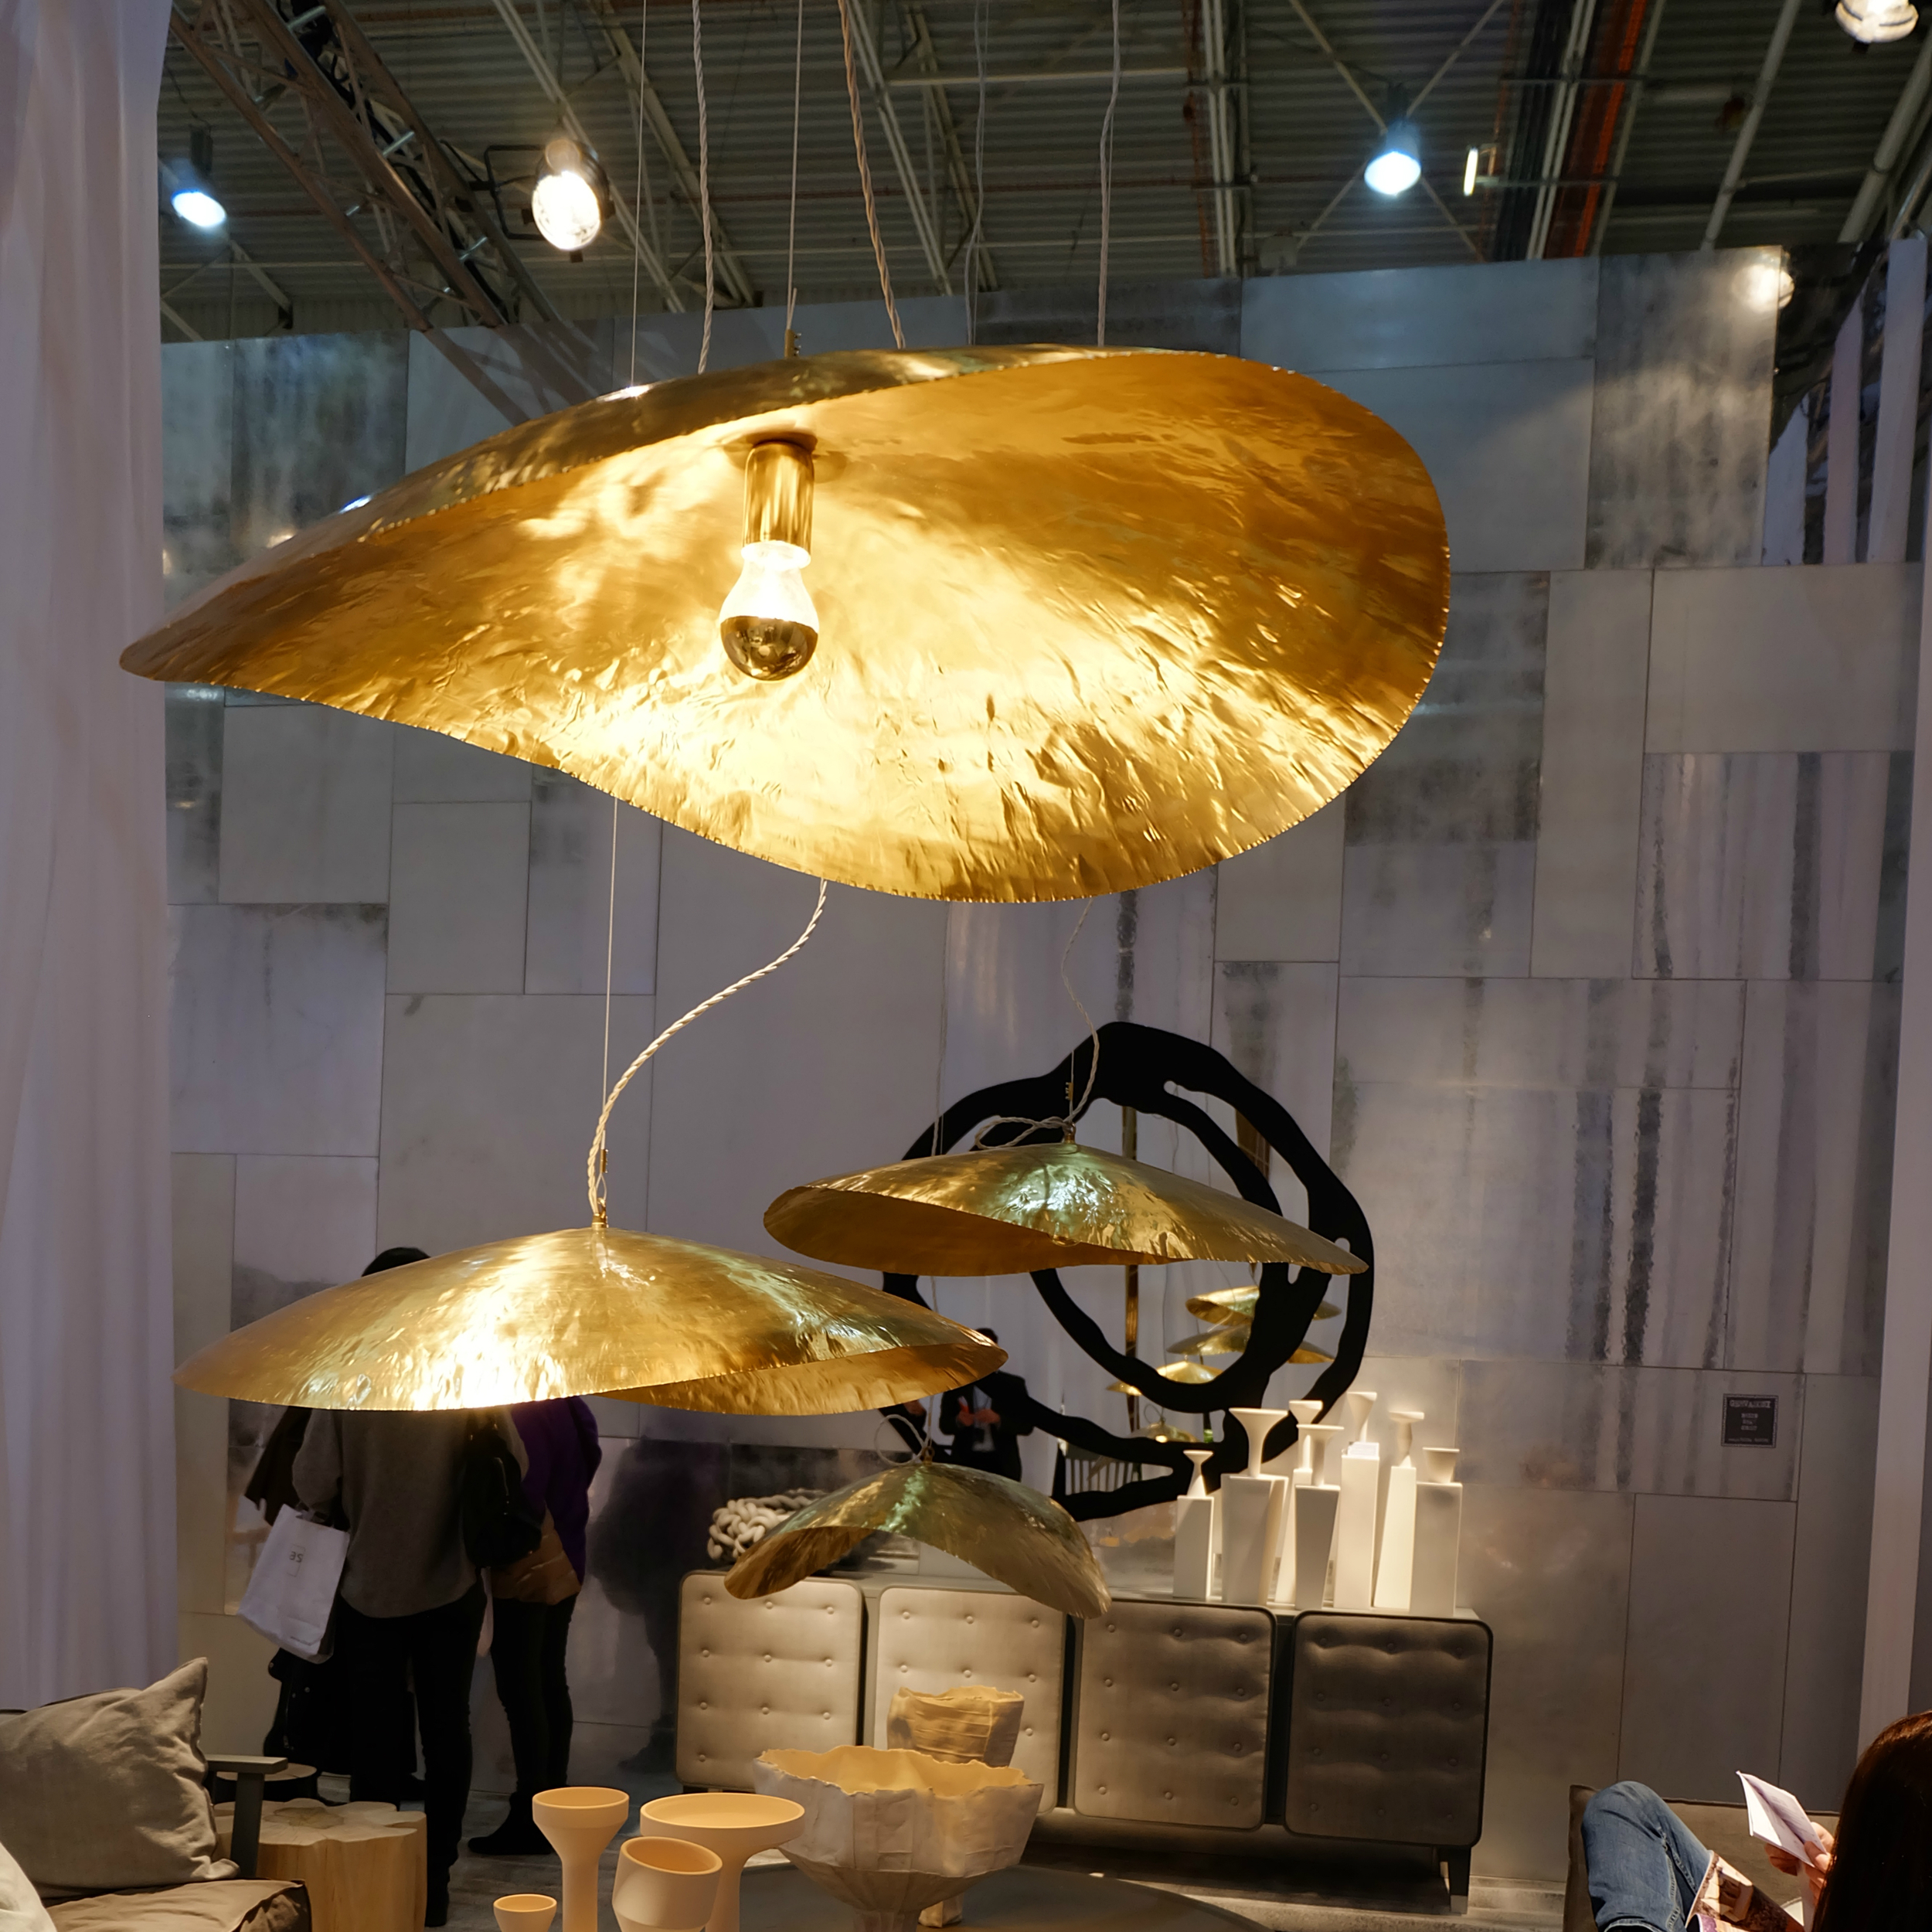 Maison & Objet 2016 Highlights - Lighting fixture with rich gold finish | MSH Agency